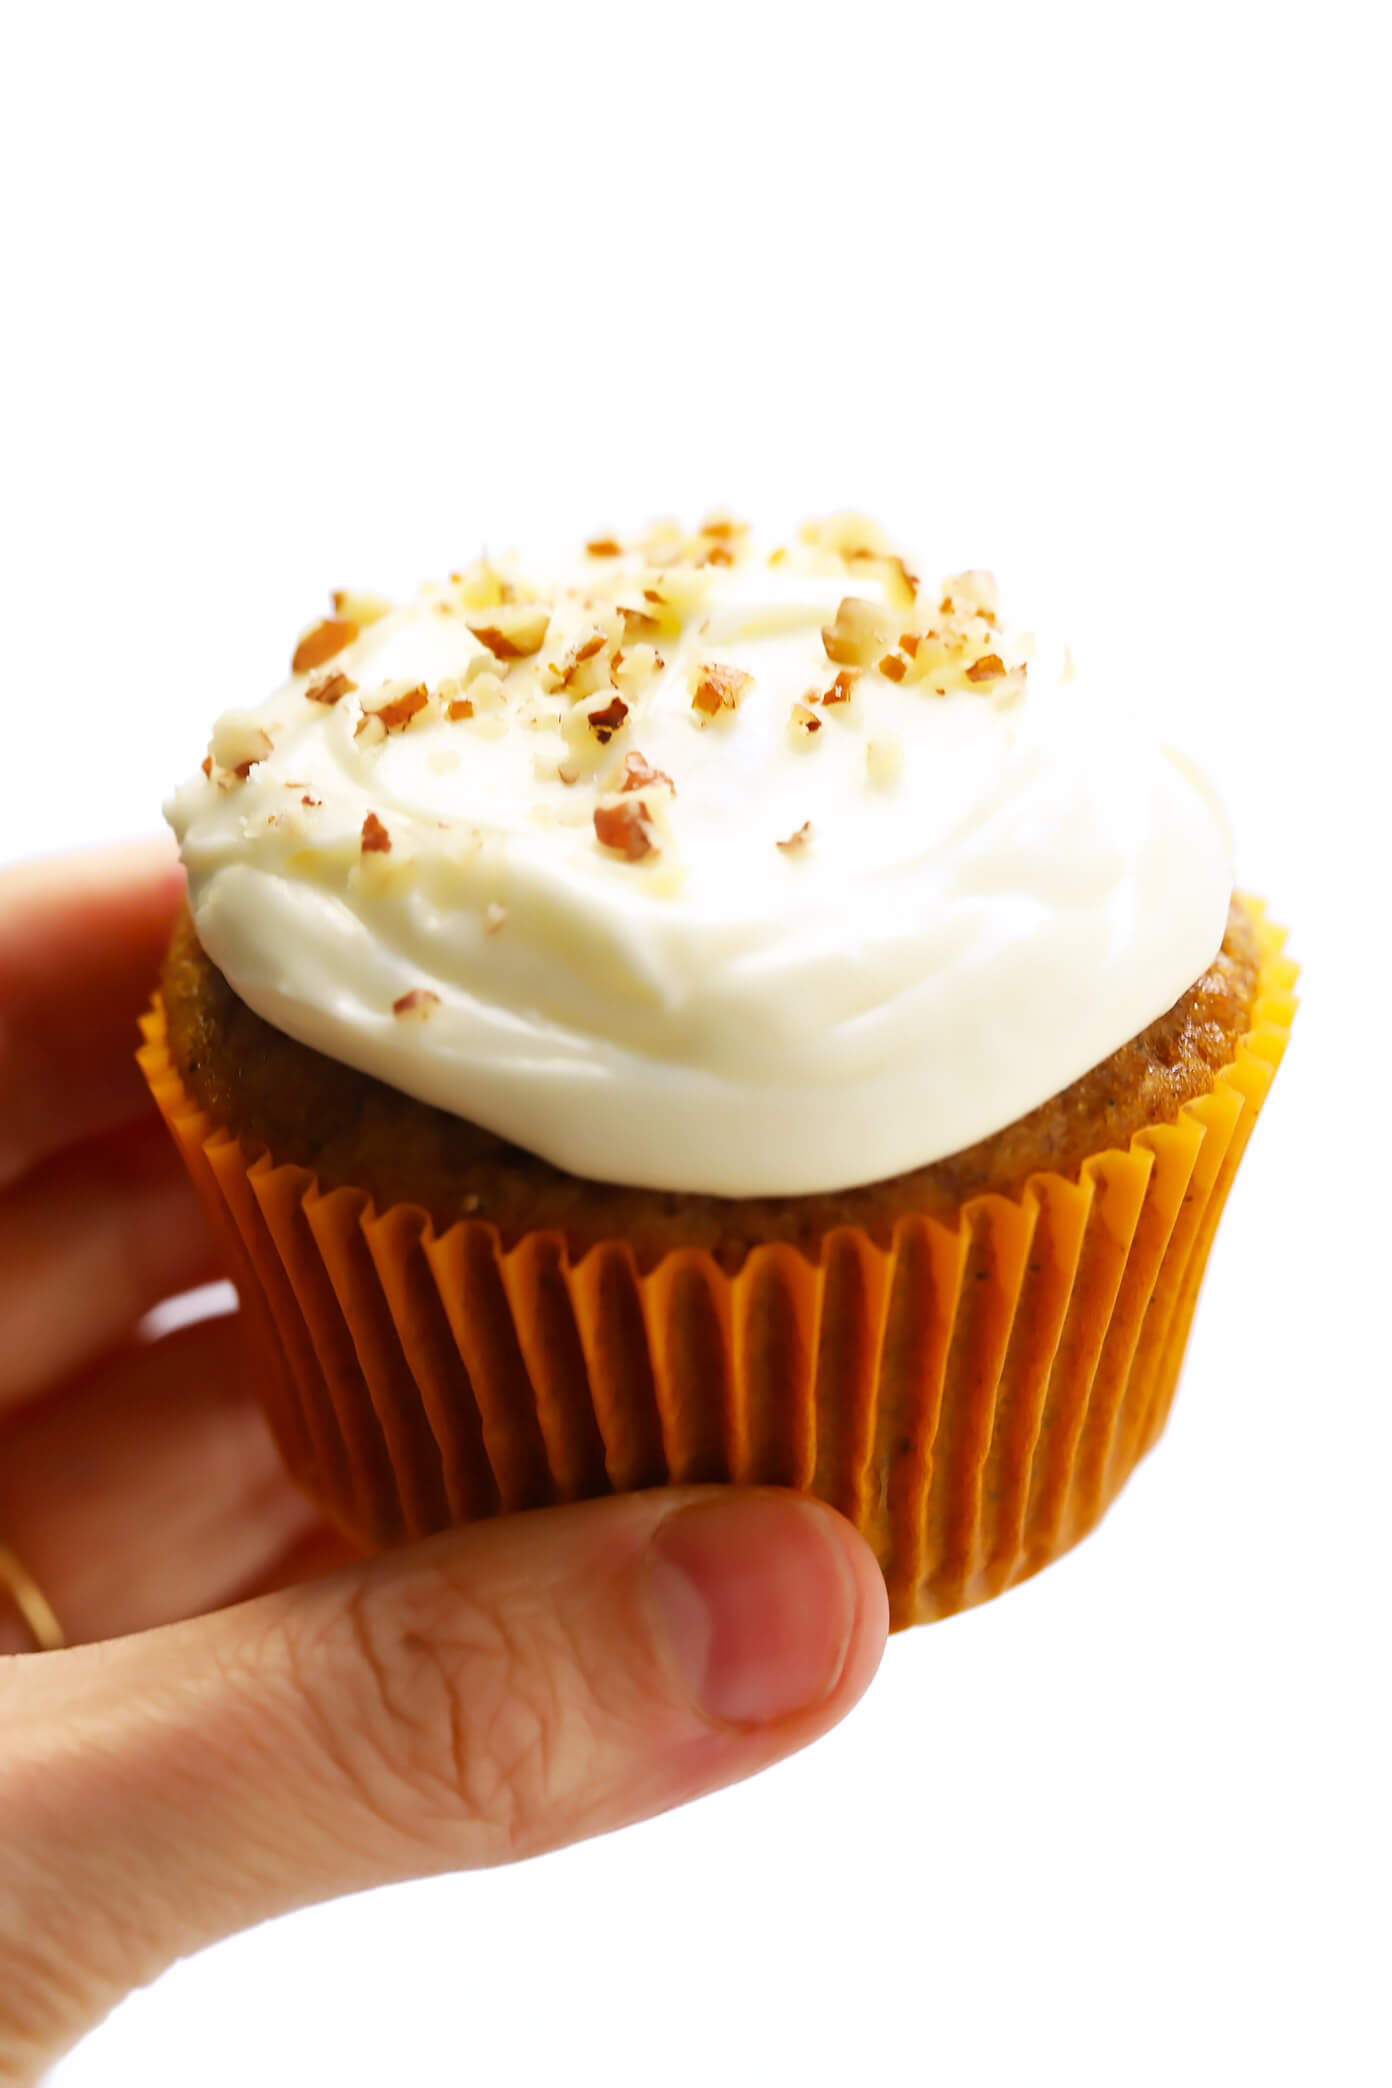 Carrot Cake Cupcakes with Cream Cheese Frosting